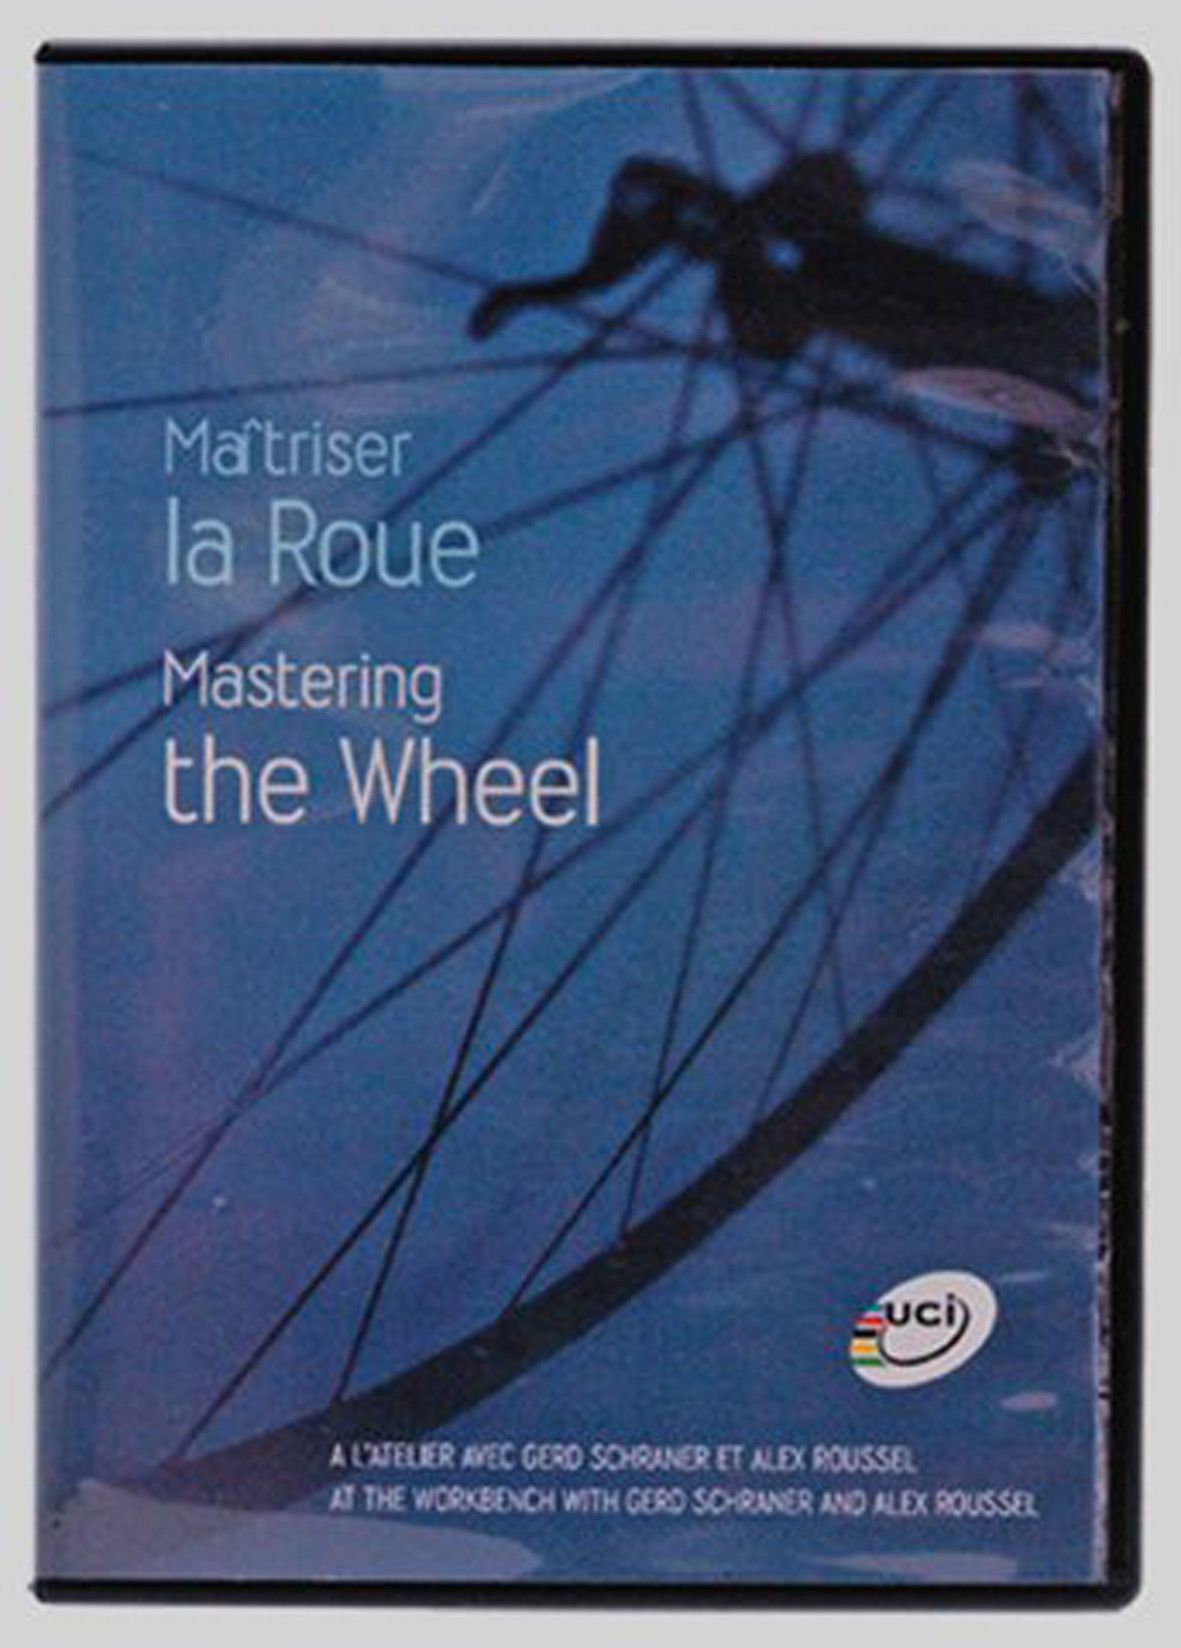 DT SWISS DVDISC DT MASTER THE WHEEL DVD1